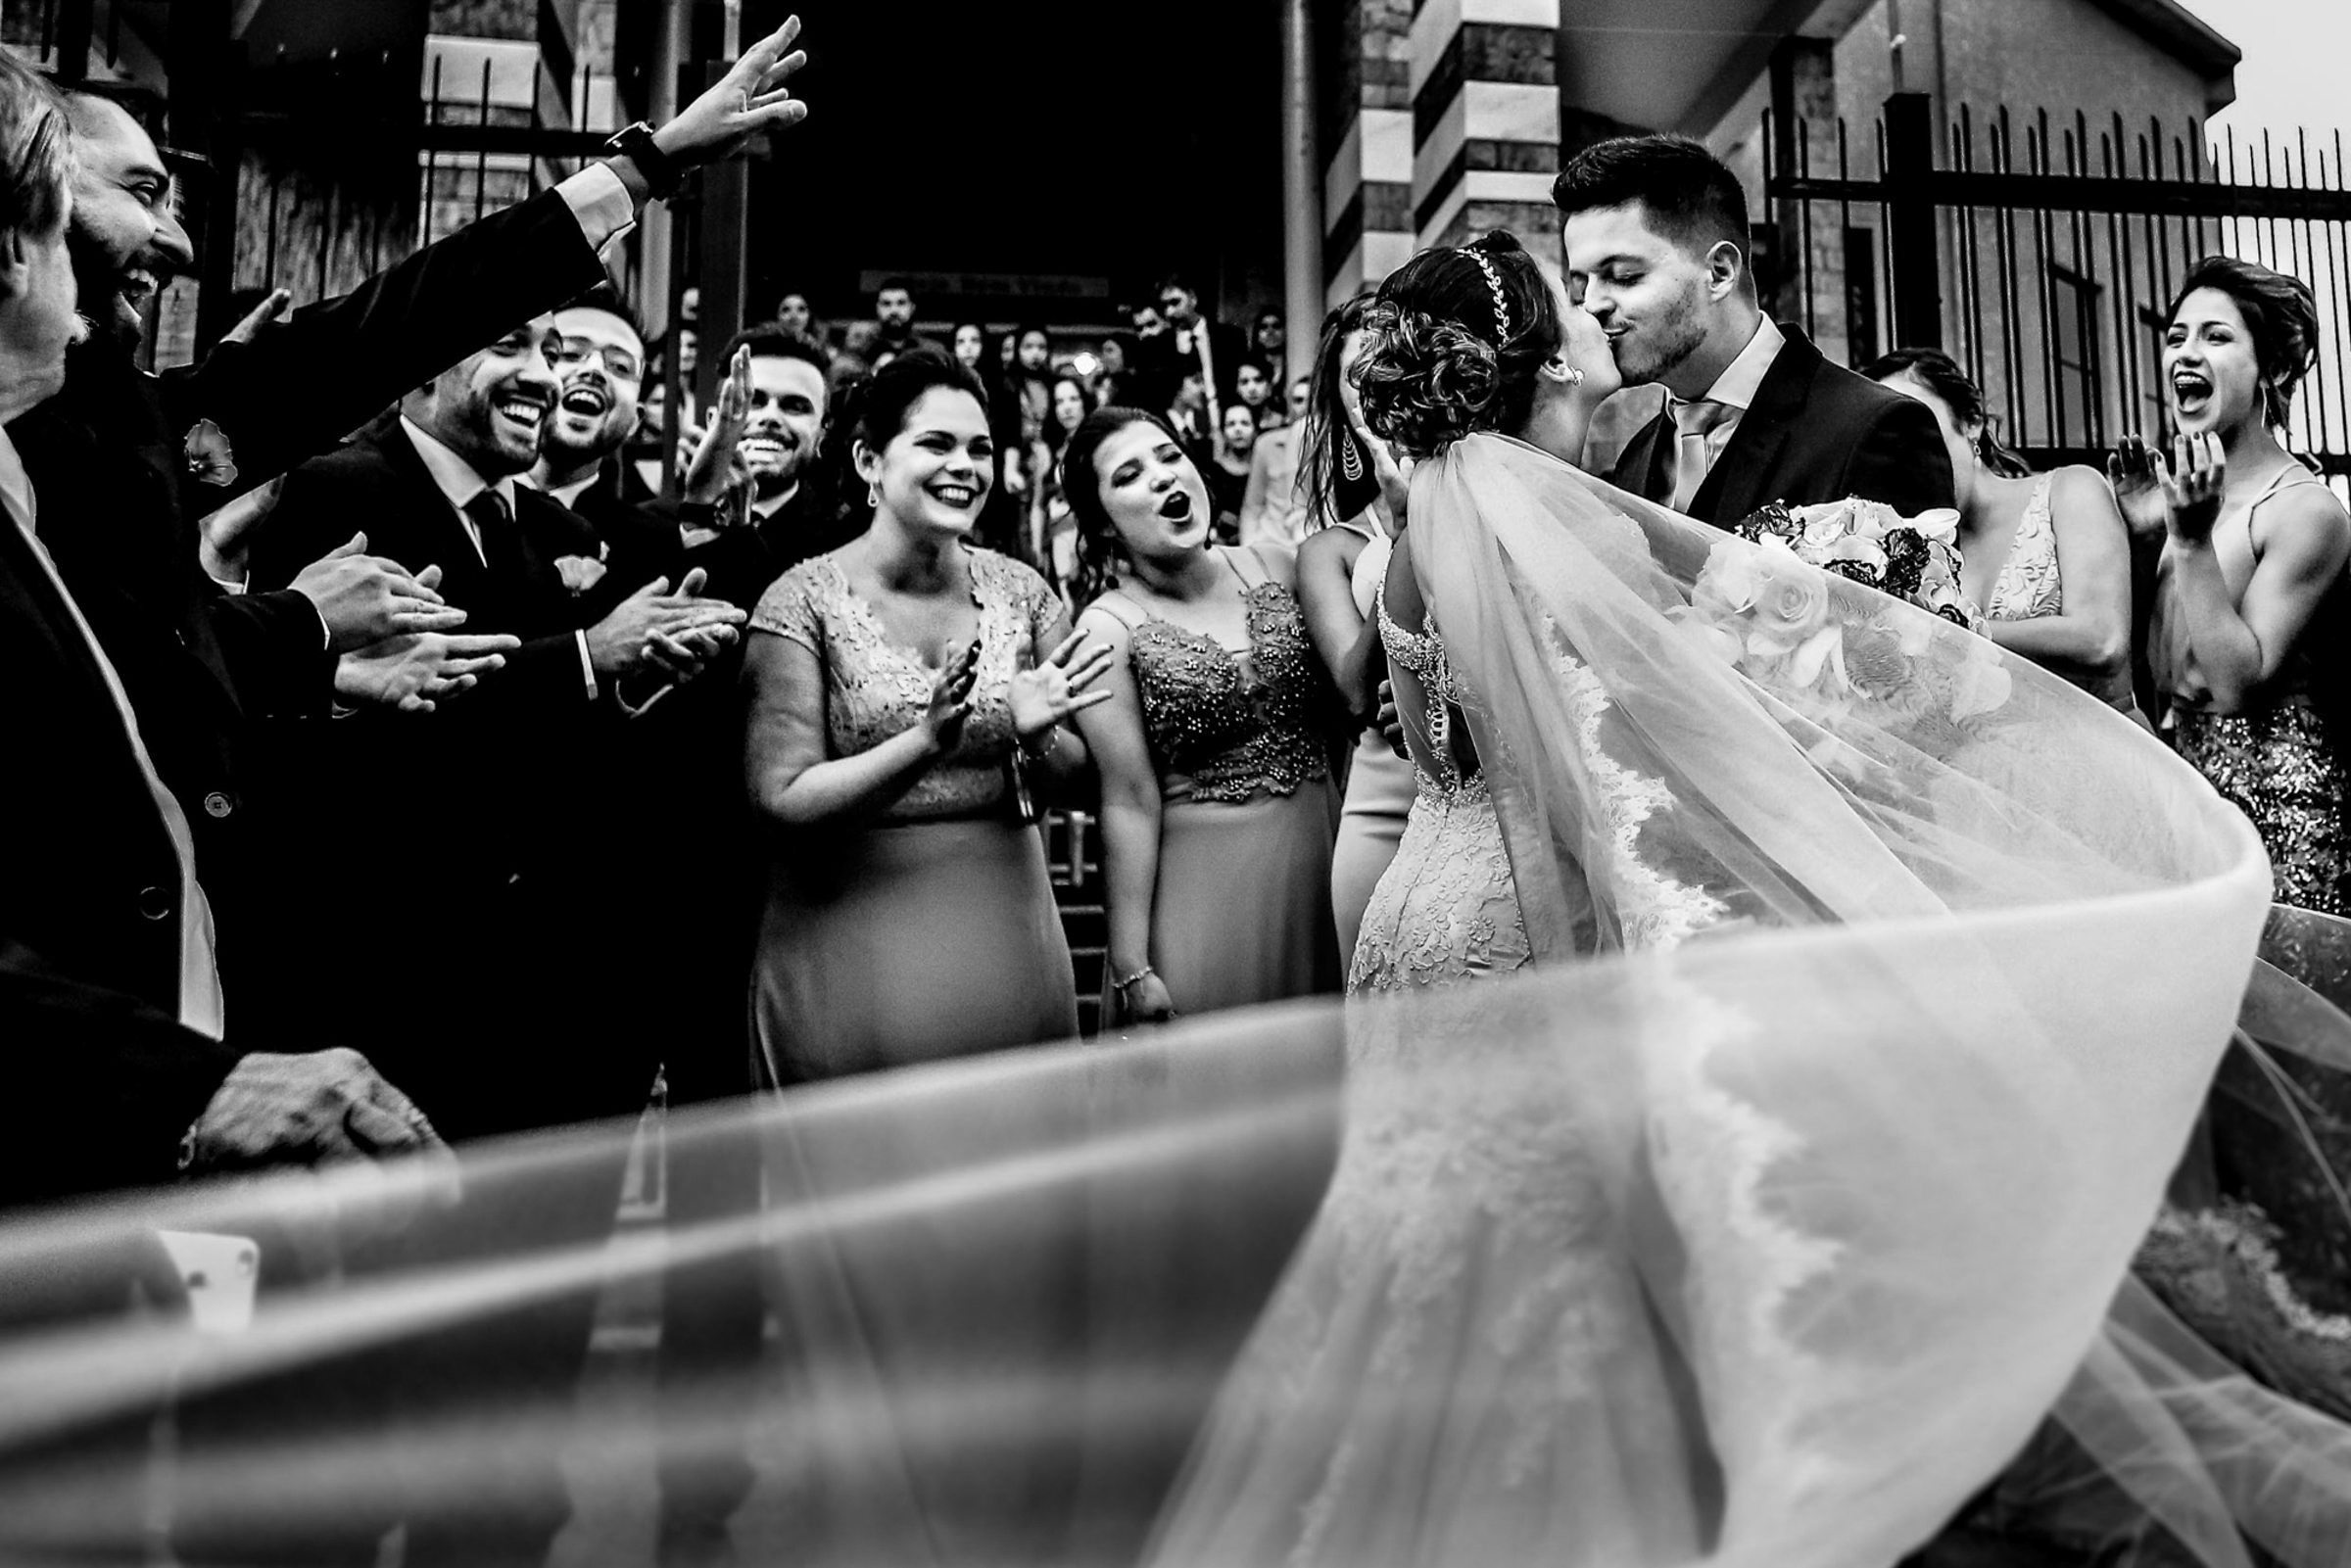 Guests cheer as couple kiss while veil blows in the wind - photo by Área da Fotografia - Portugal photographer